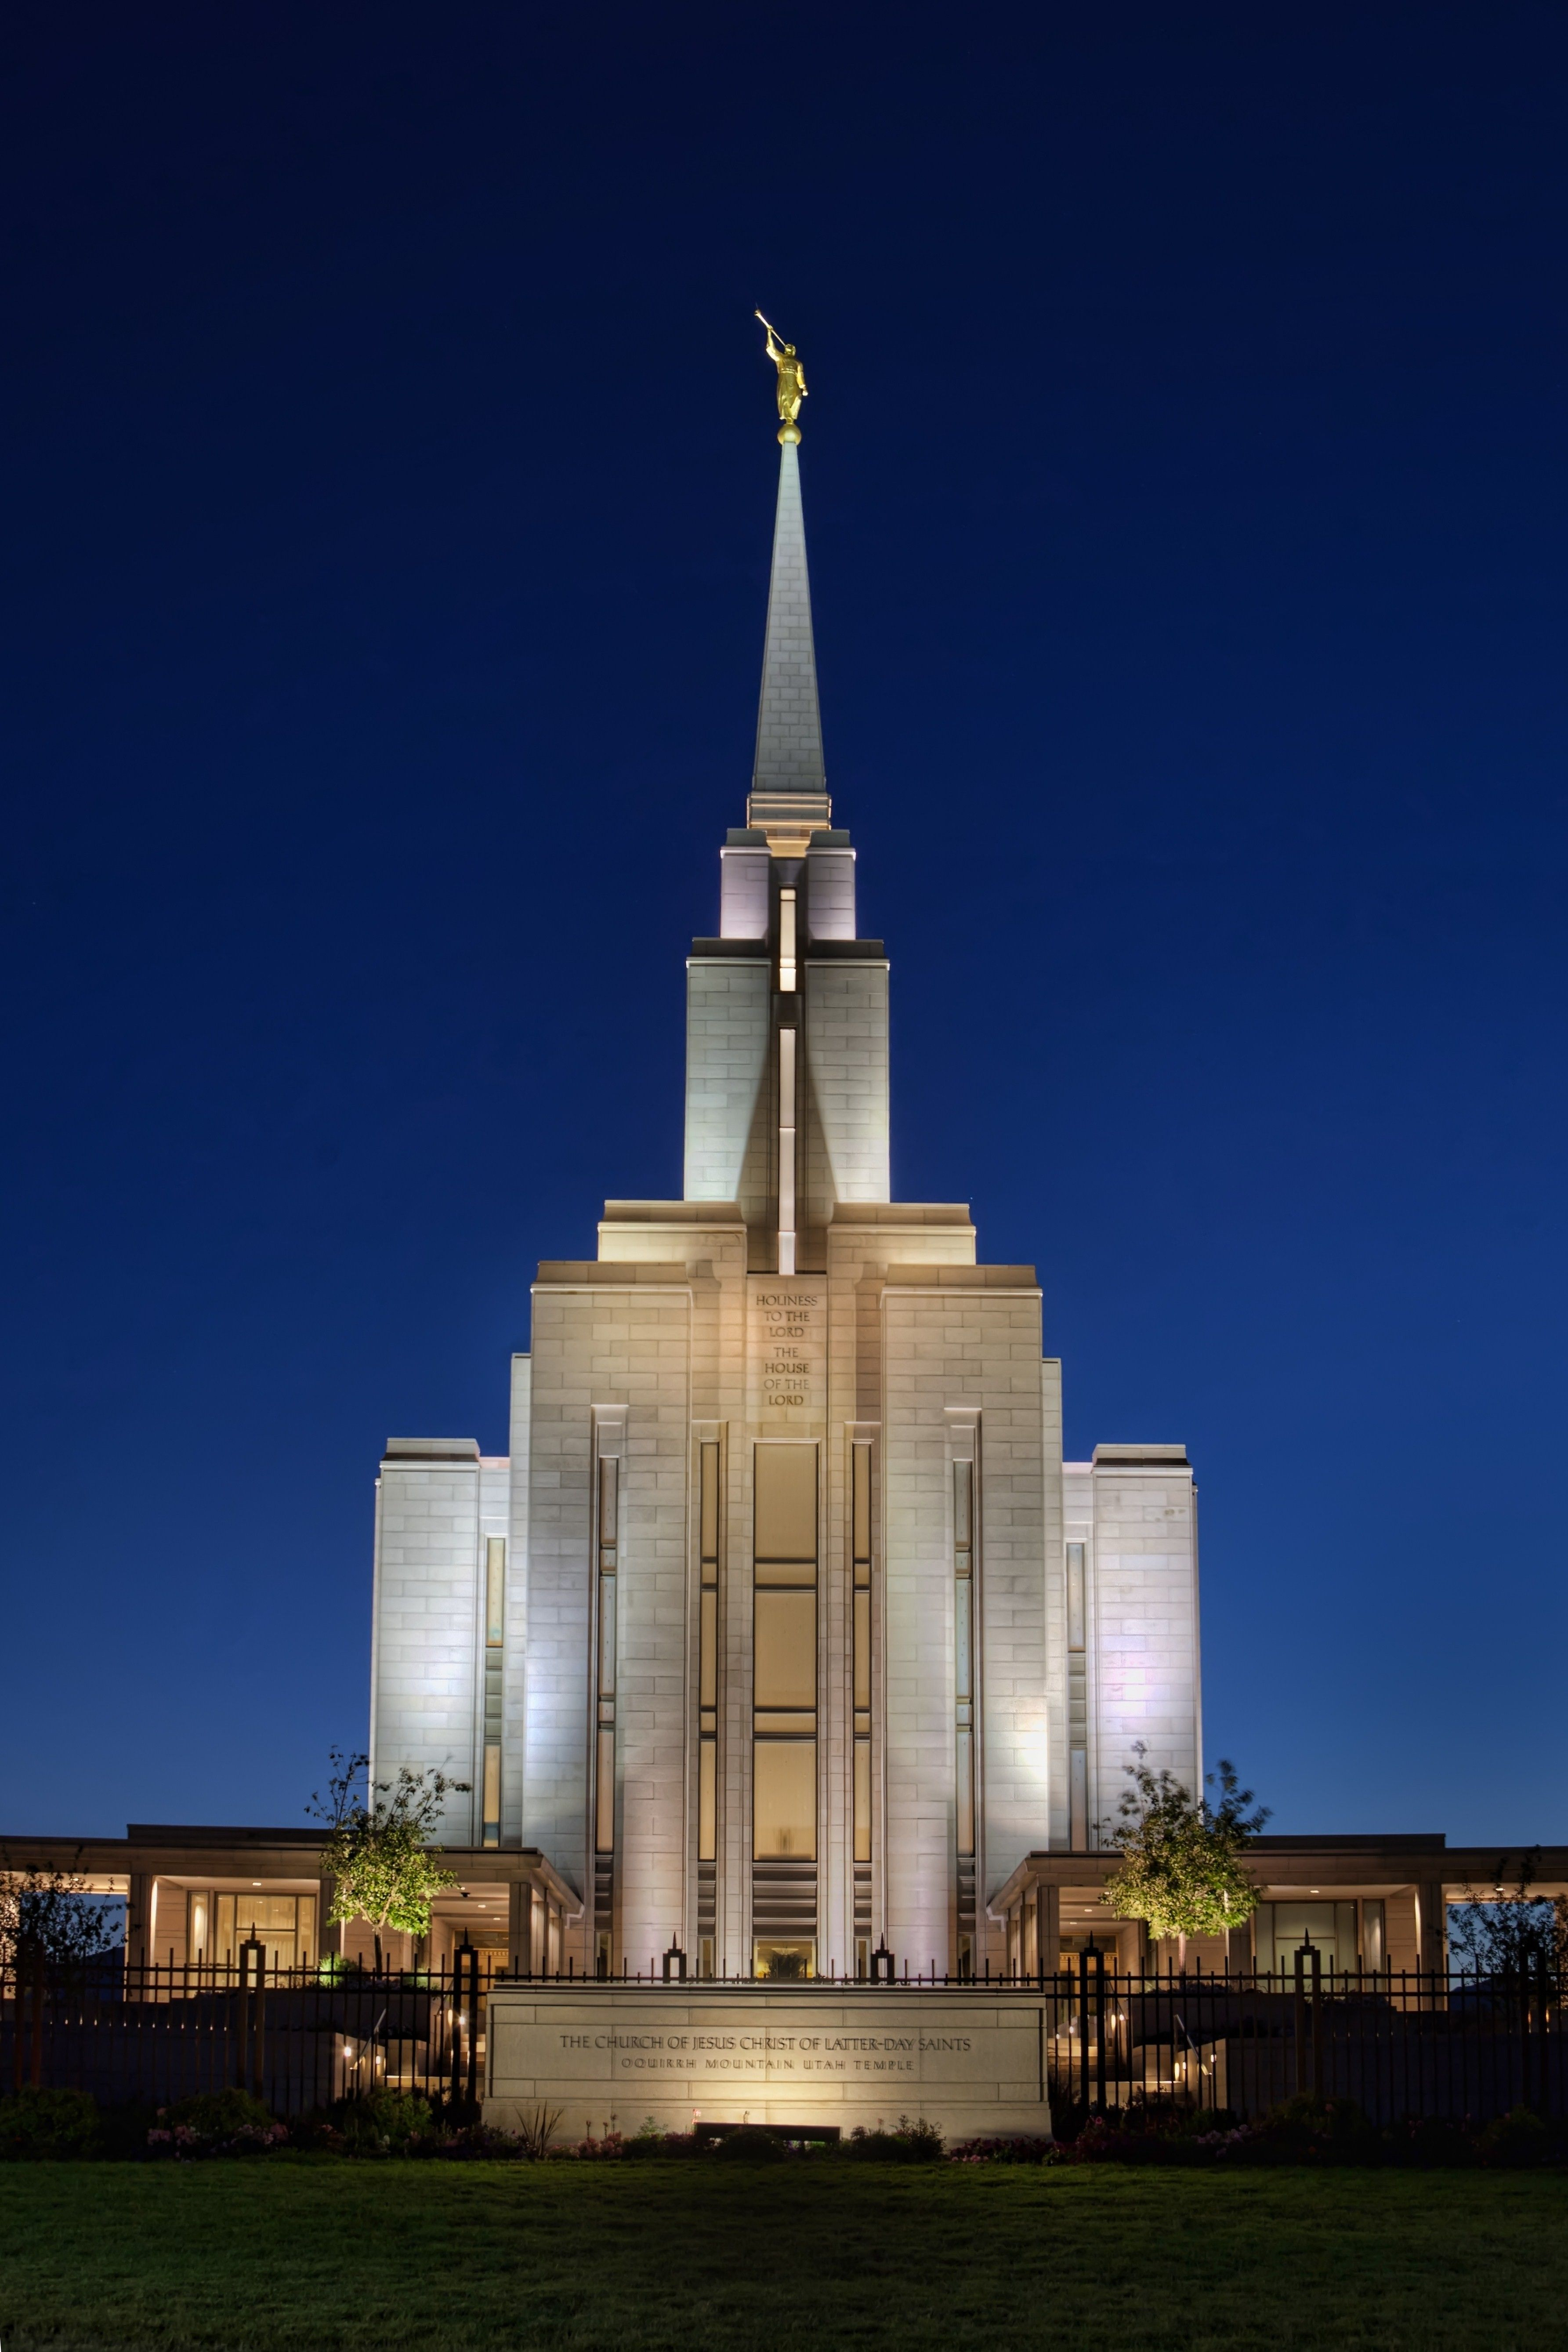 The Oquirrh Mountain Utah Temple in the evening, including the name sign and entrance.